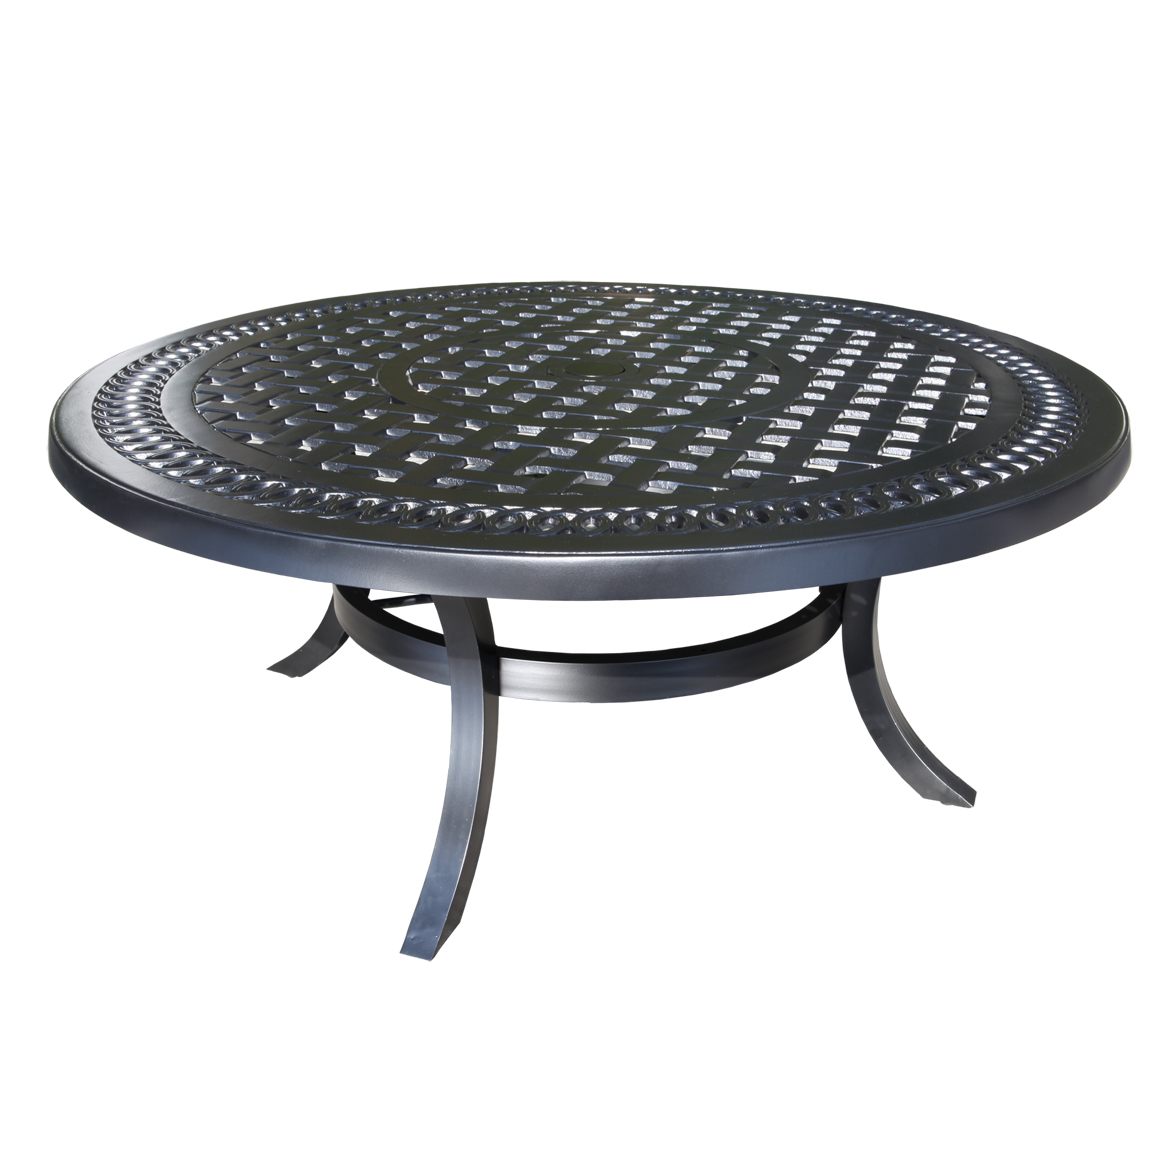 Home Goods Furniture Tables Outdoor Side Table Umbrella Hole Home